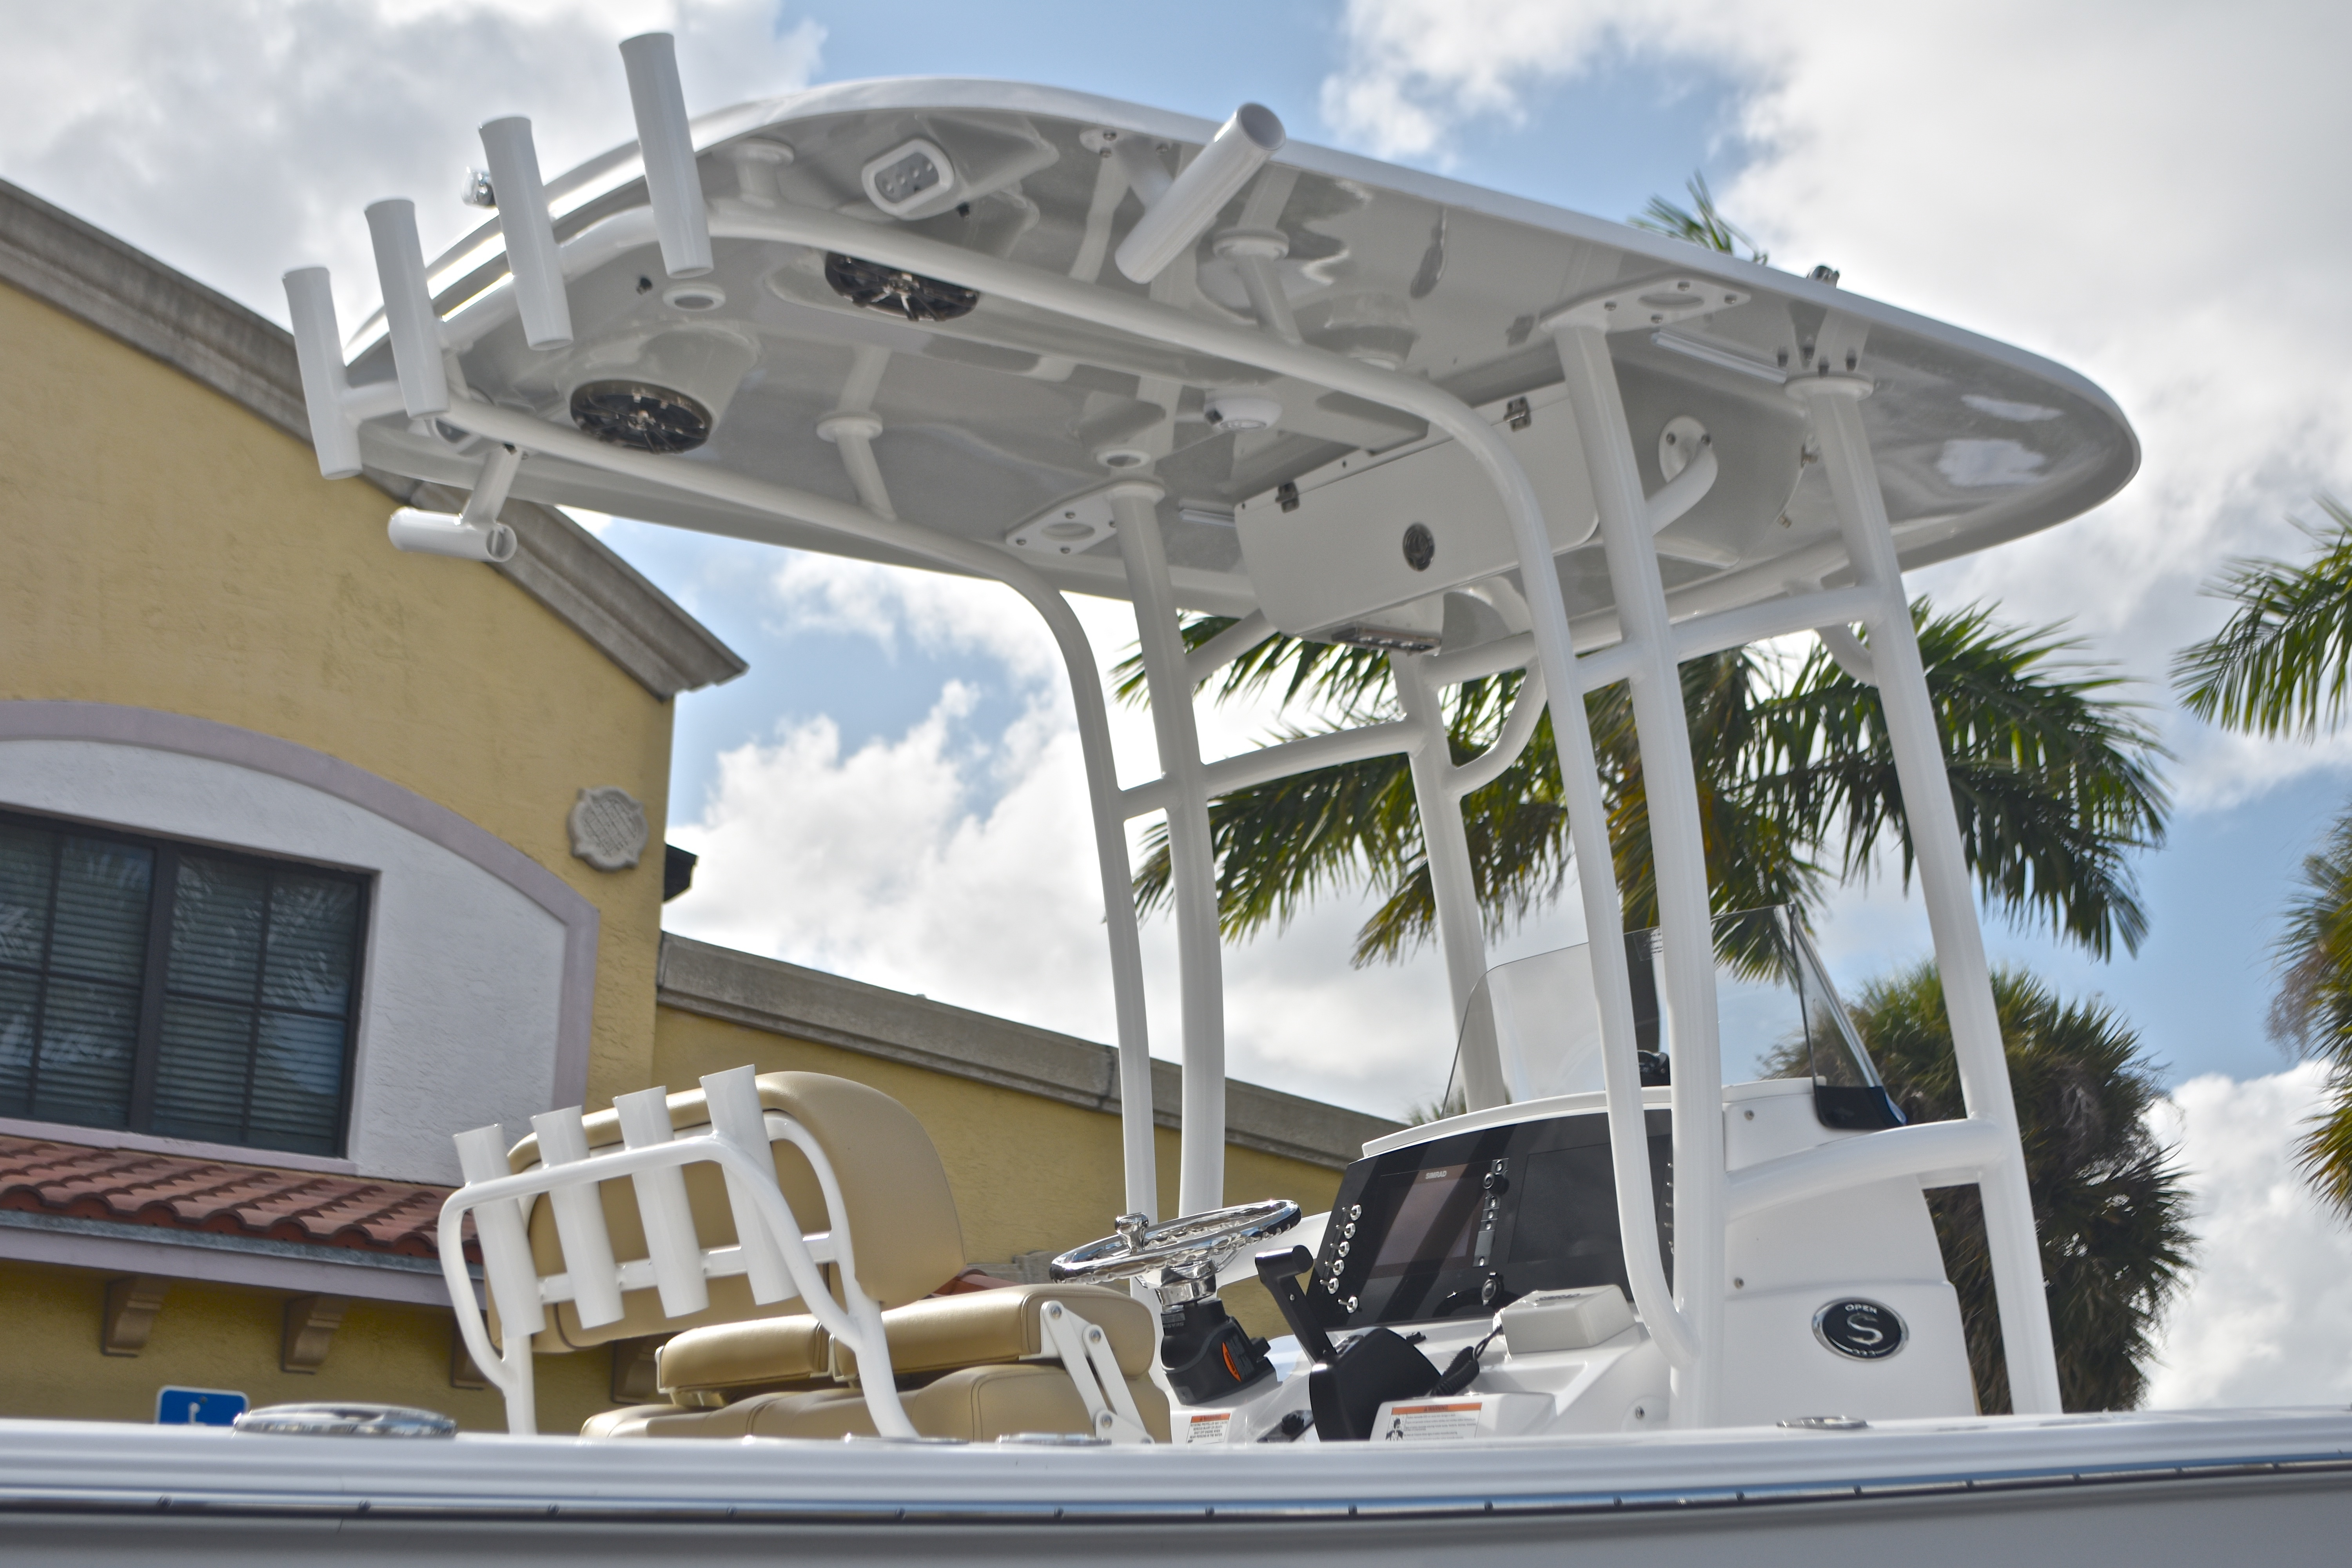 Thumbnail 9 for New 2017 Sportsman Open 232 Center Console boat for sale in West Palm Beach, FL